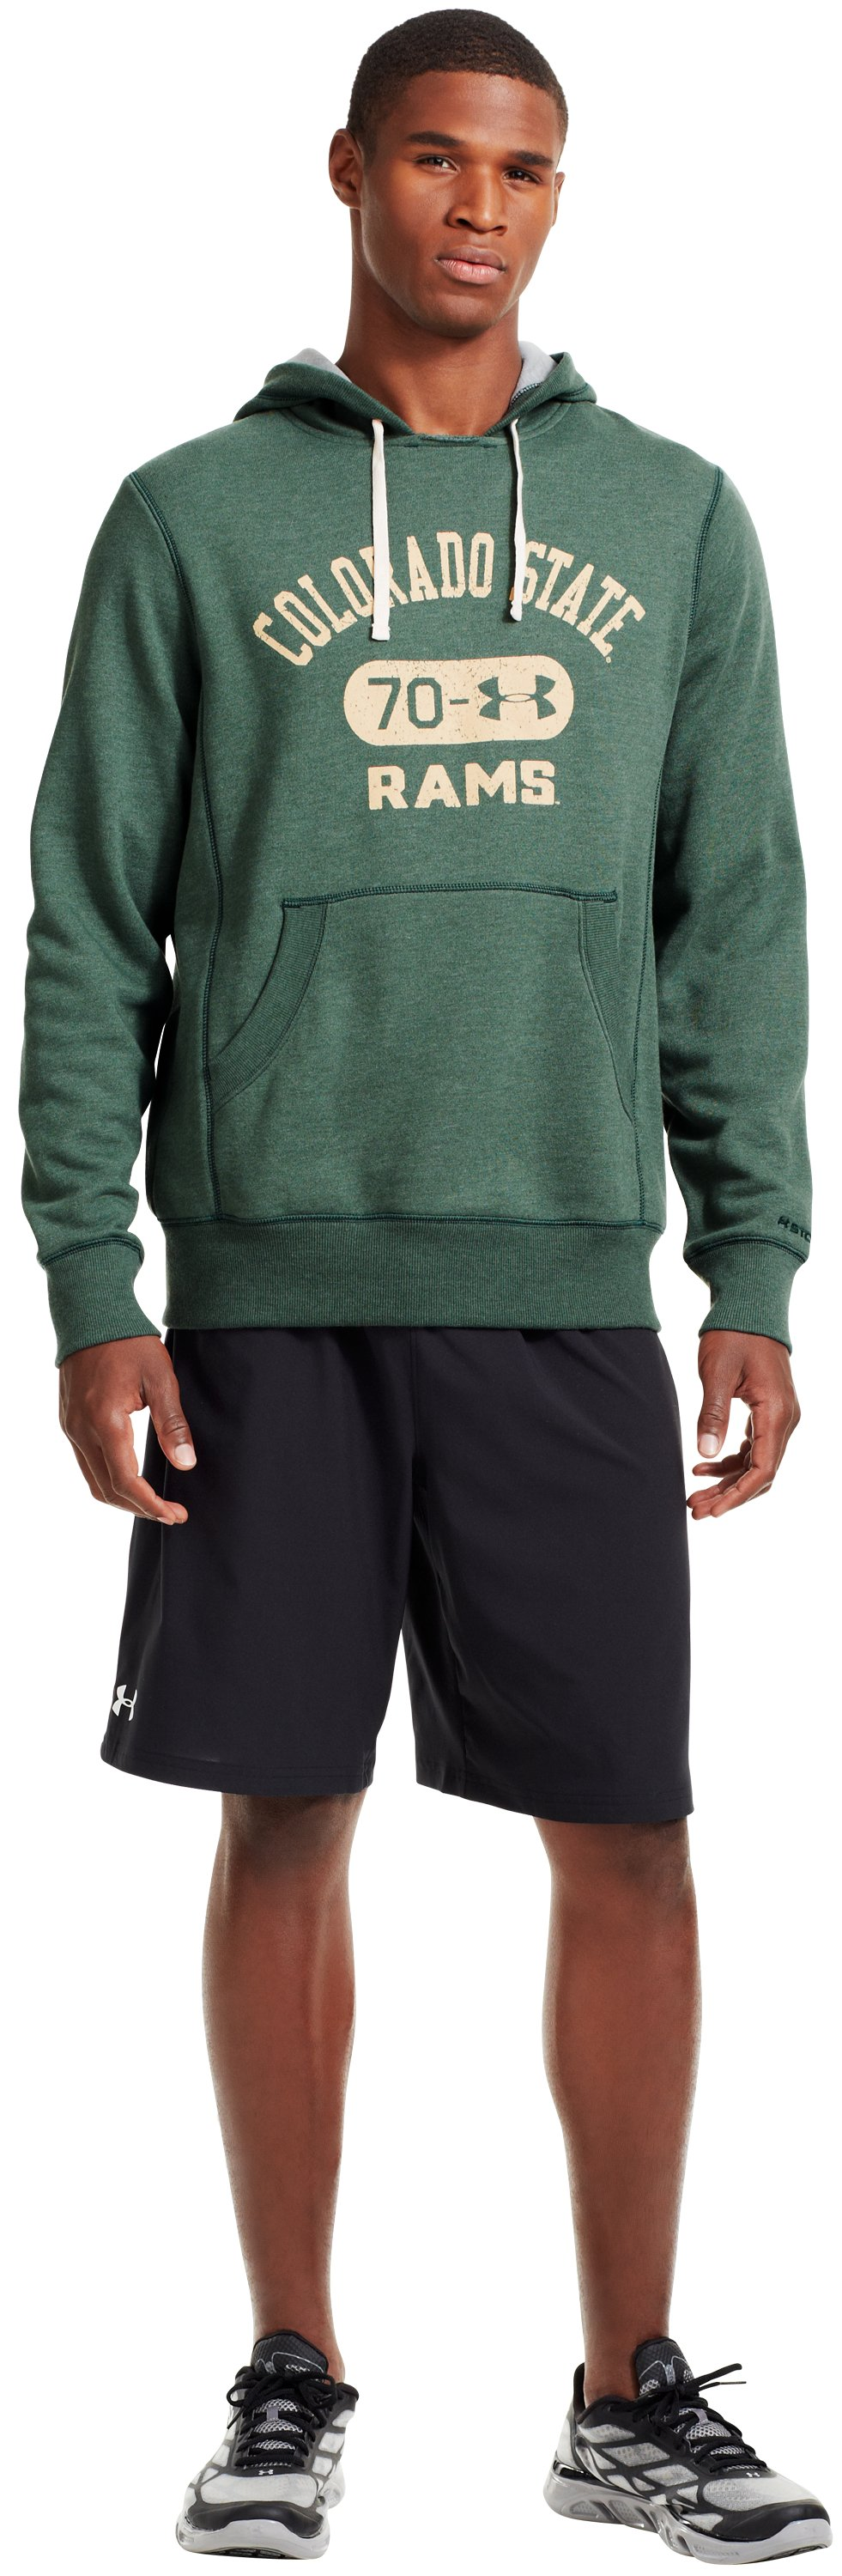 Men's Colorado State Under Armour® Legacy Hoodie, Forest Green, Front